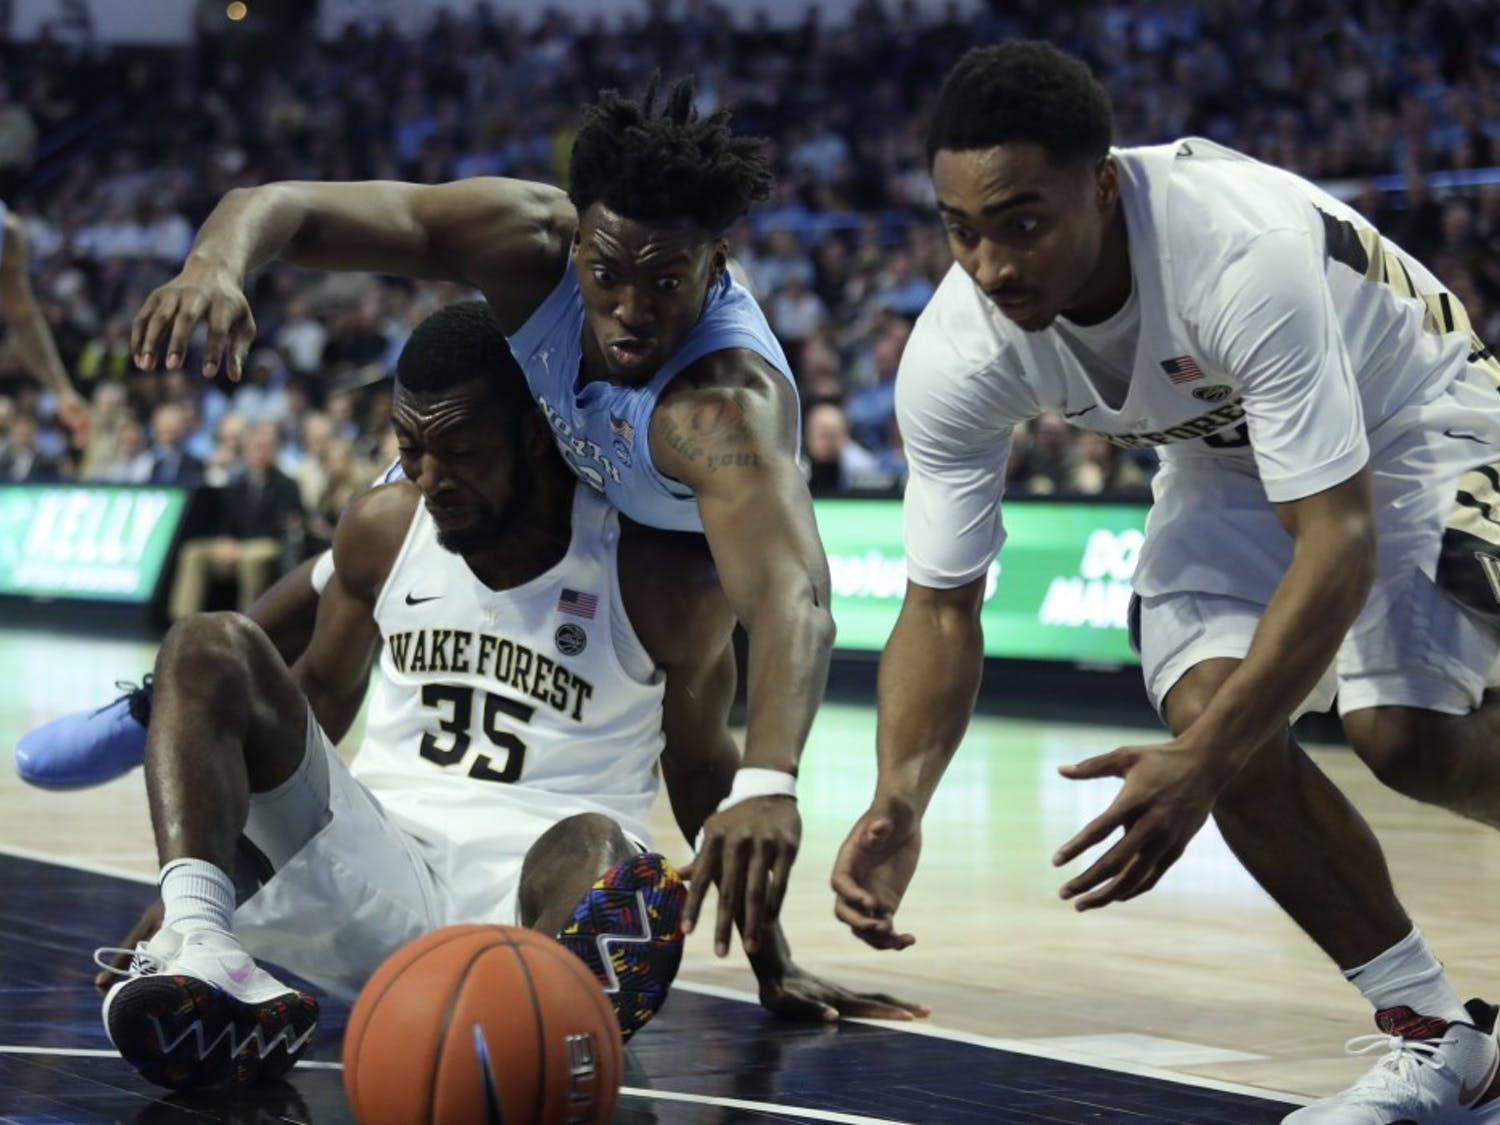 No. 8 UNC defeated Wake Forest 95-57 on Saturday, Feb. 16, 2019 at Lawrence Joel Veterans Memorial Coliseum.